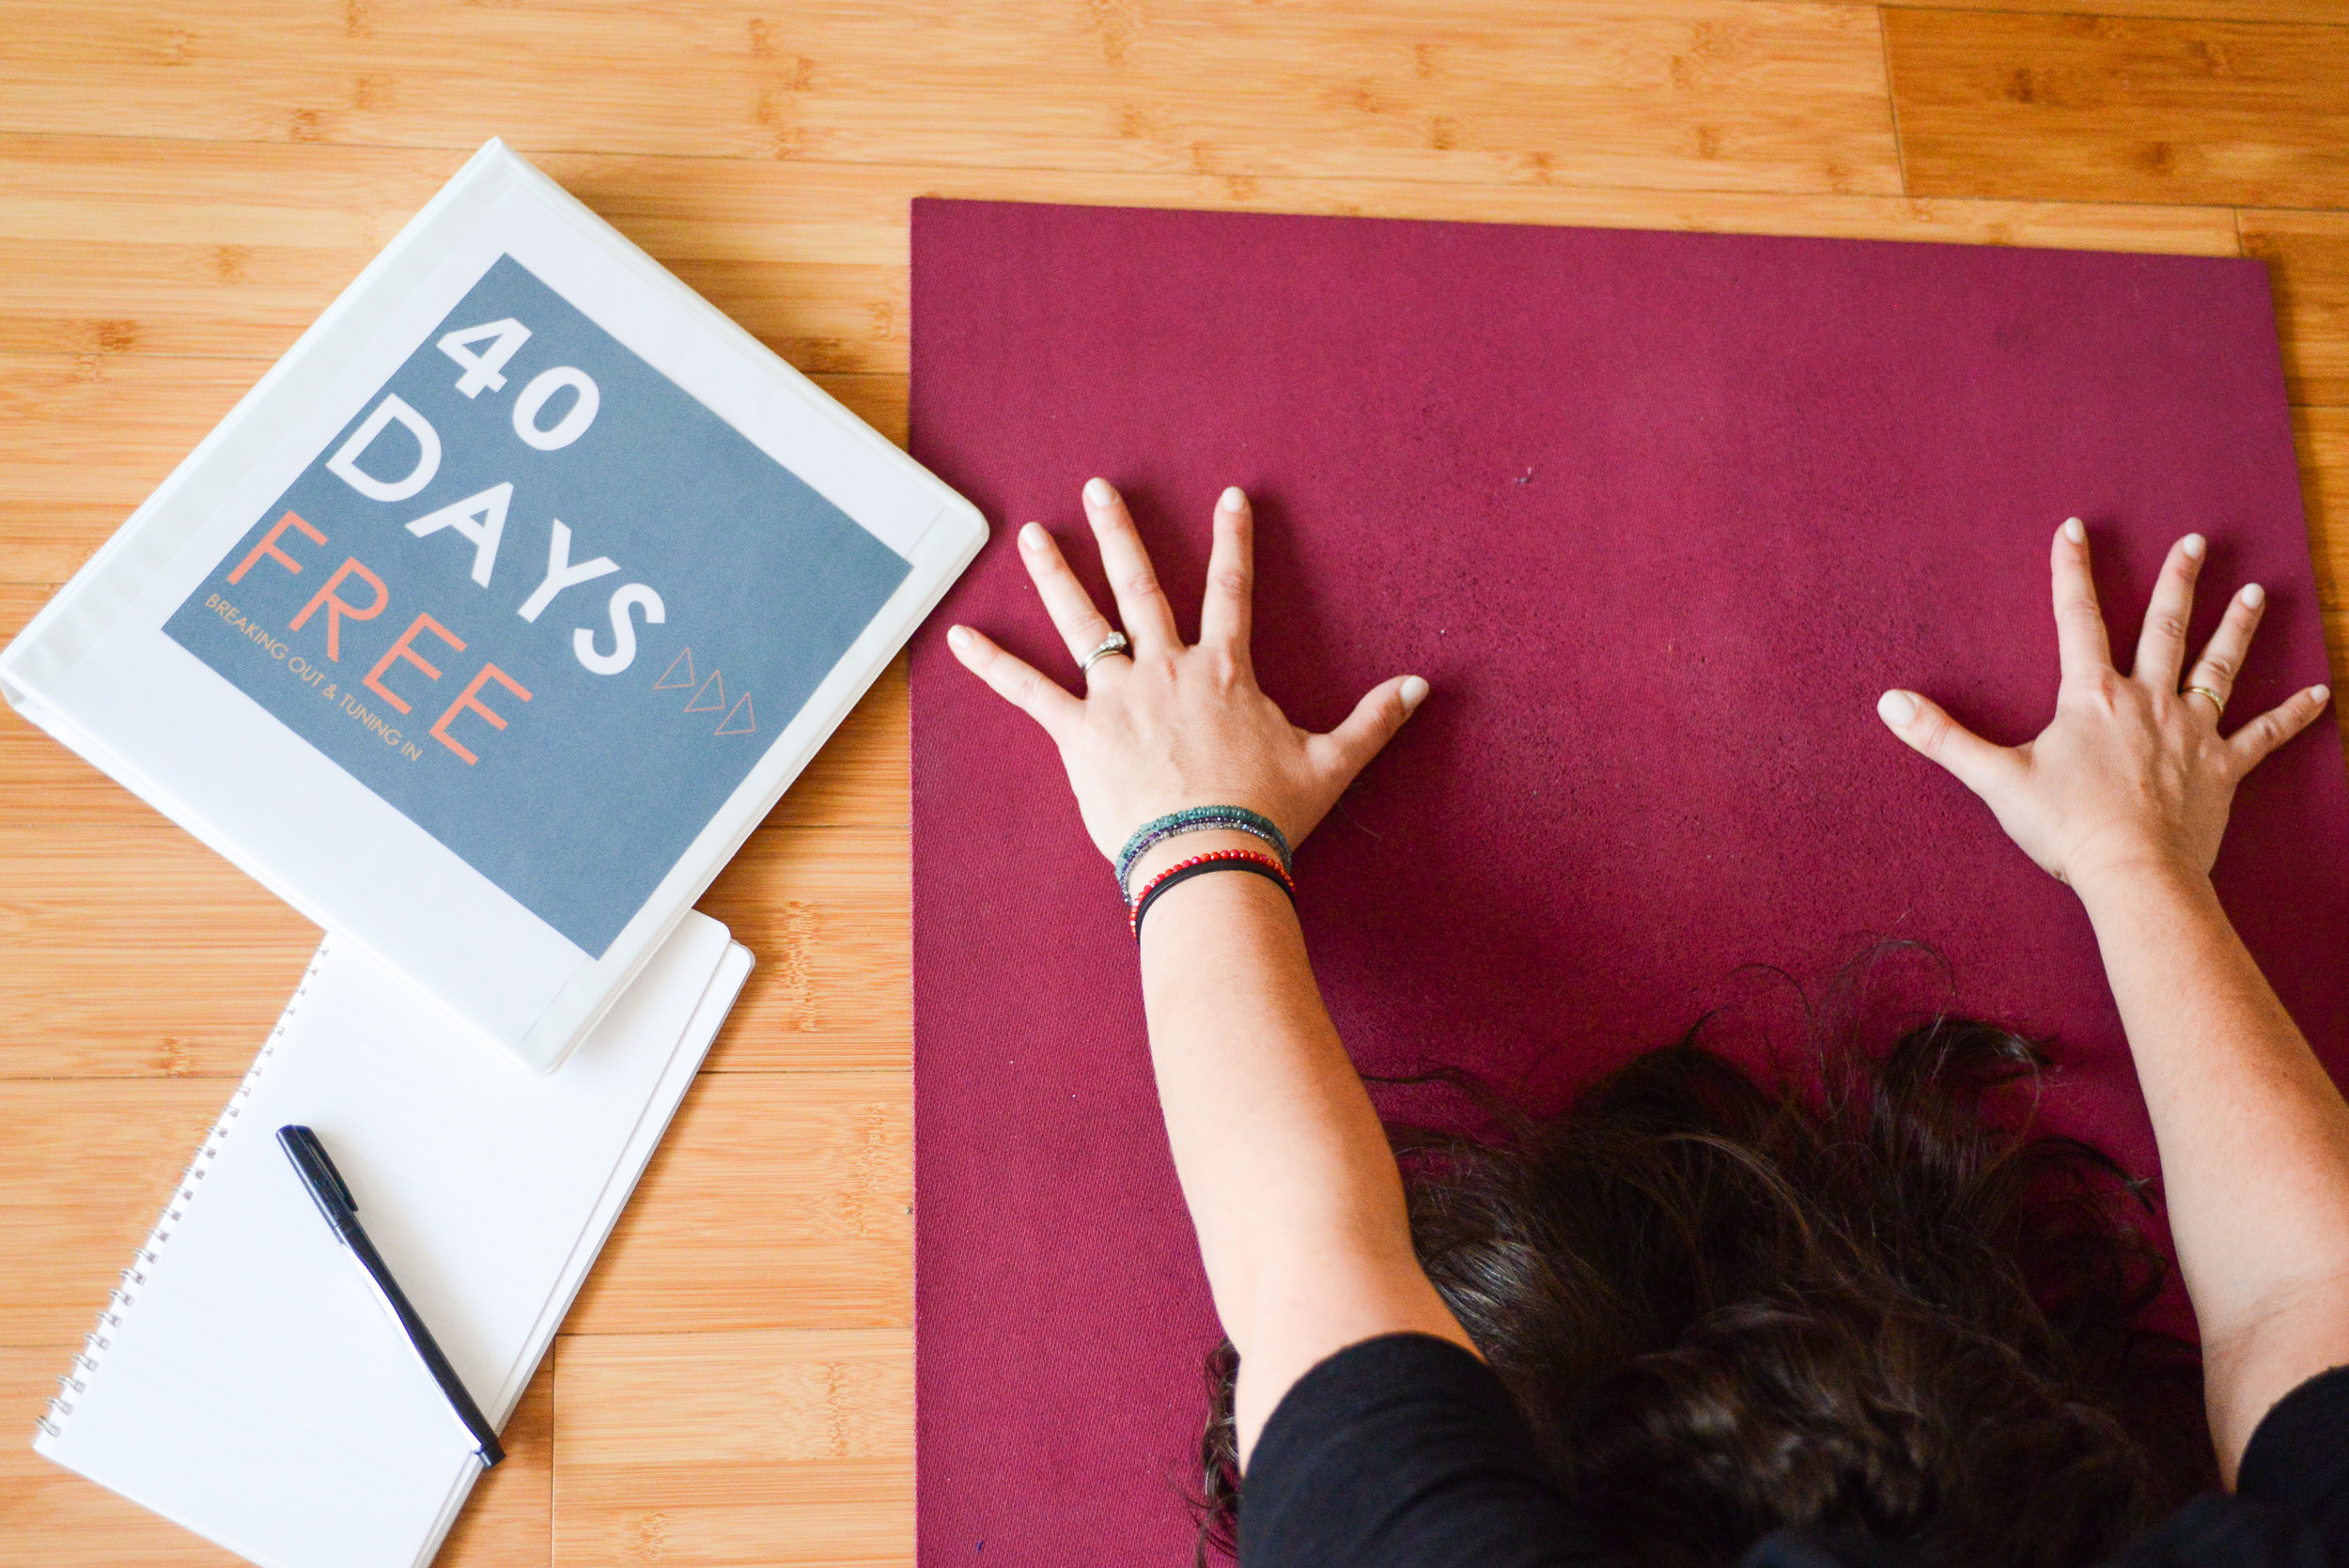 Self-Care - is everywhere, but are you really practicing it?